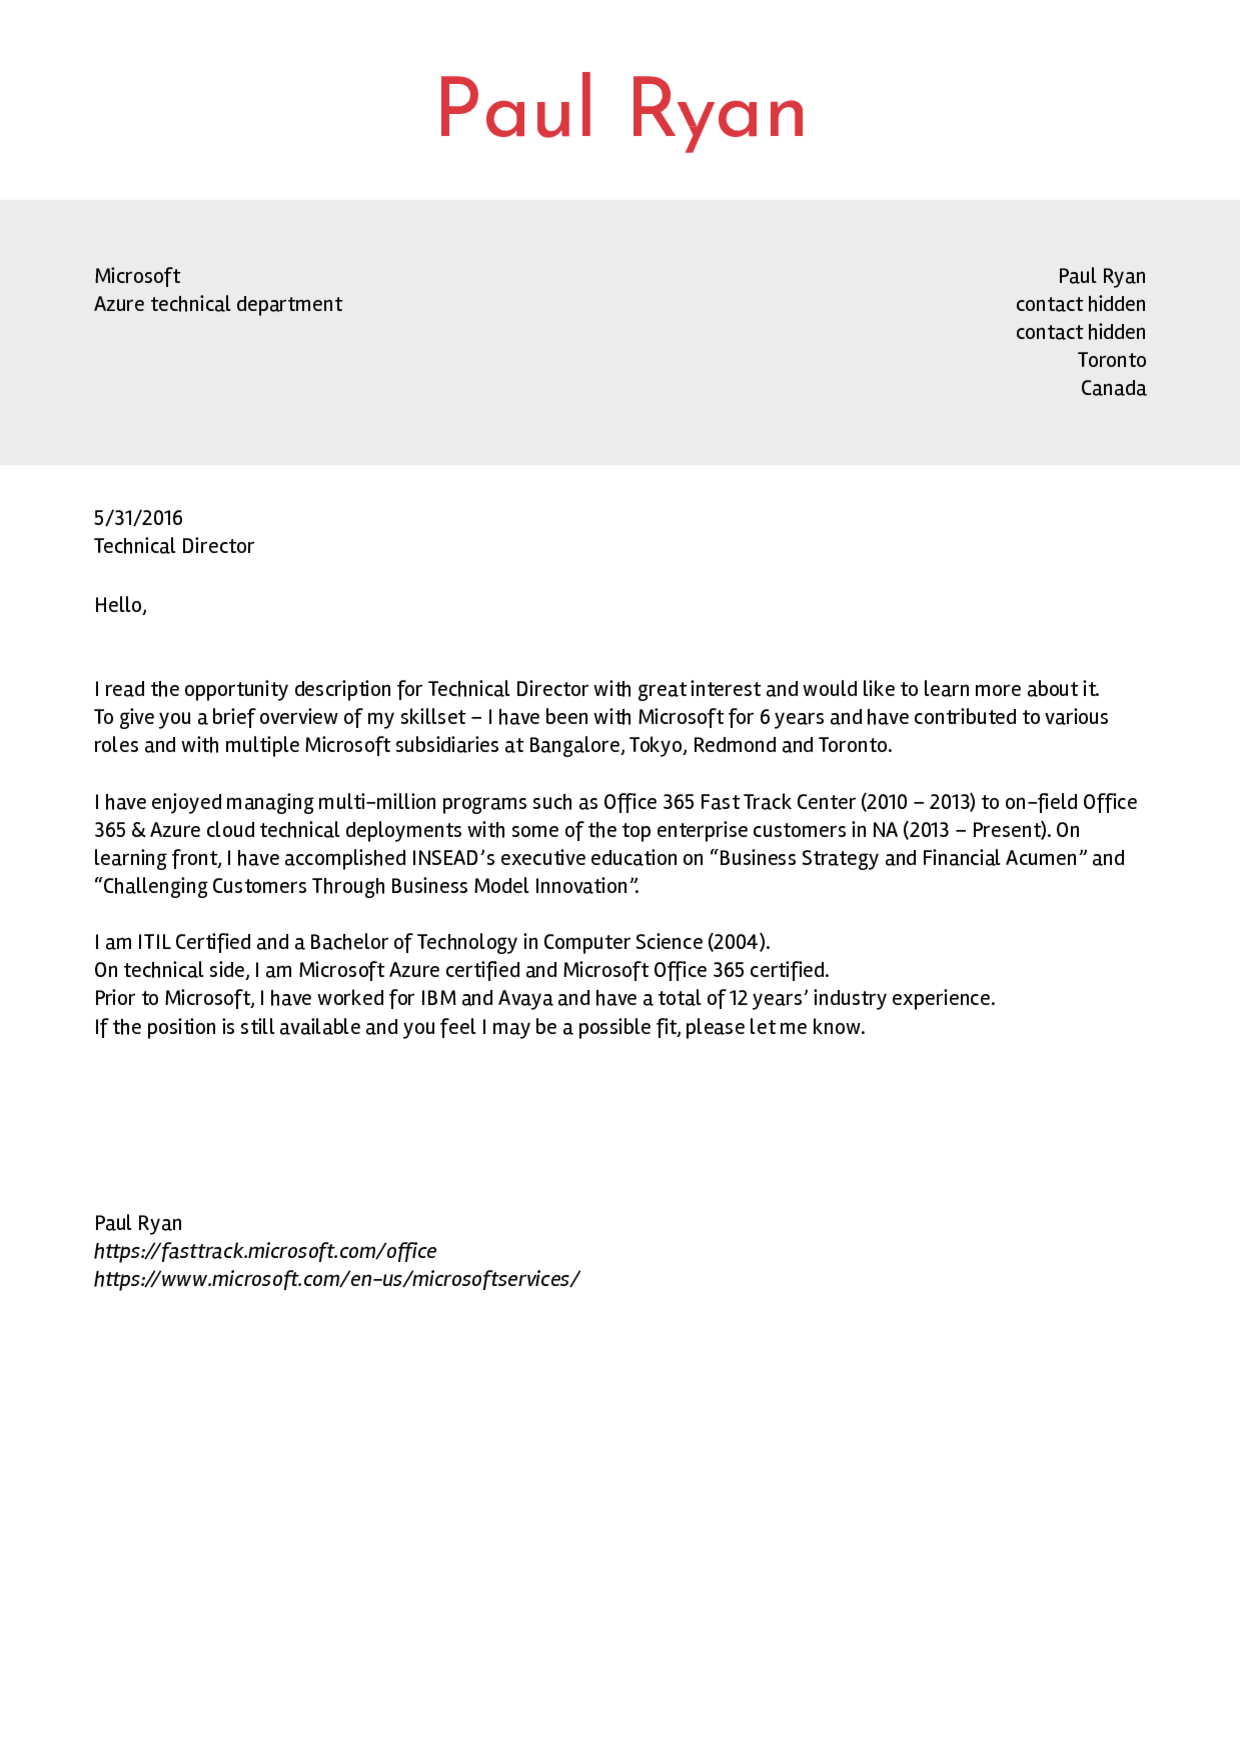 Cover Letter Template Office 365